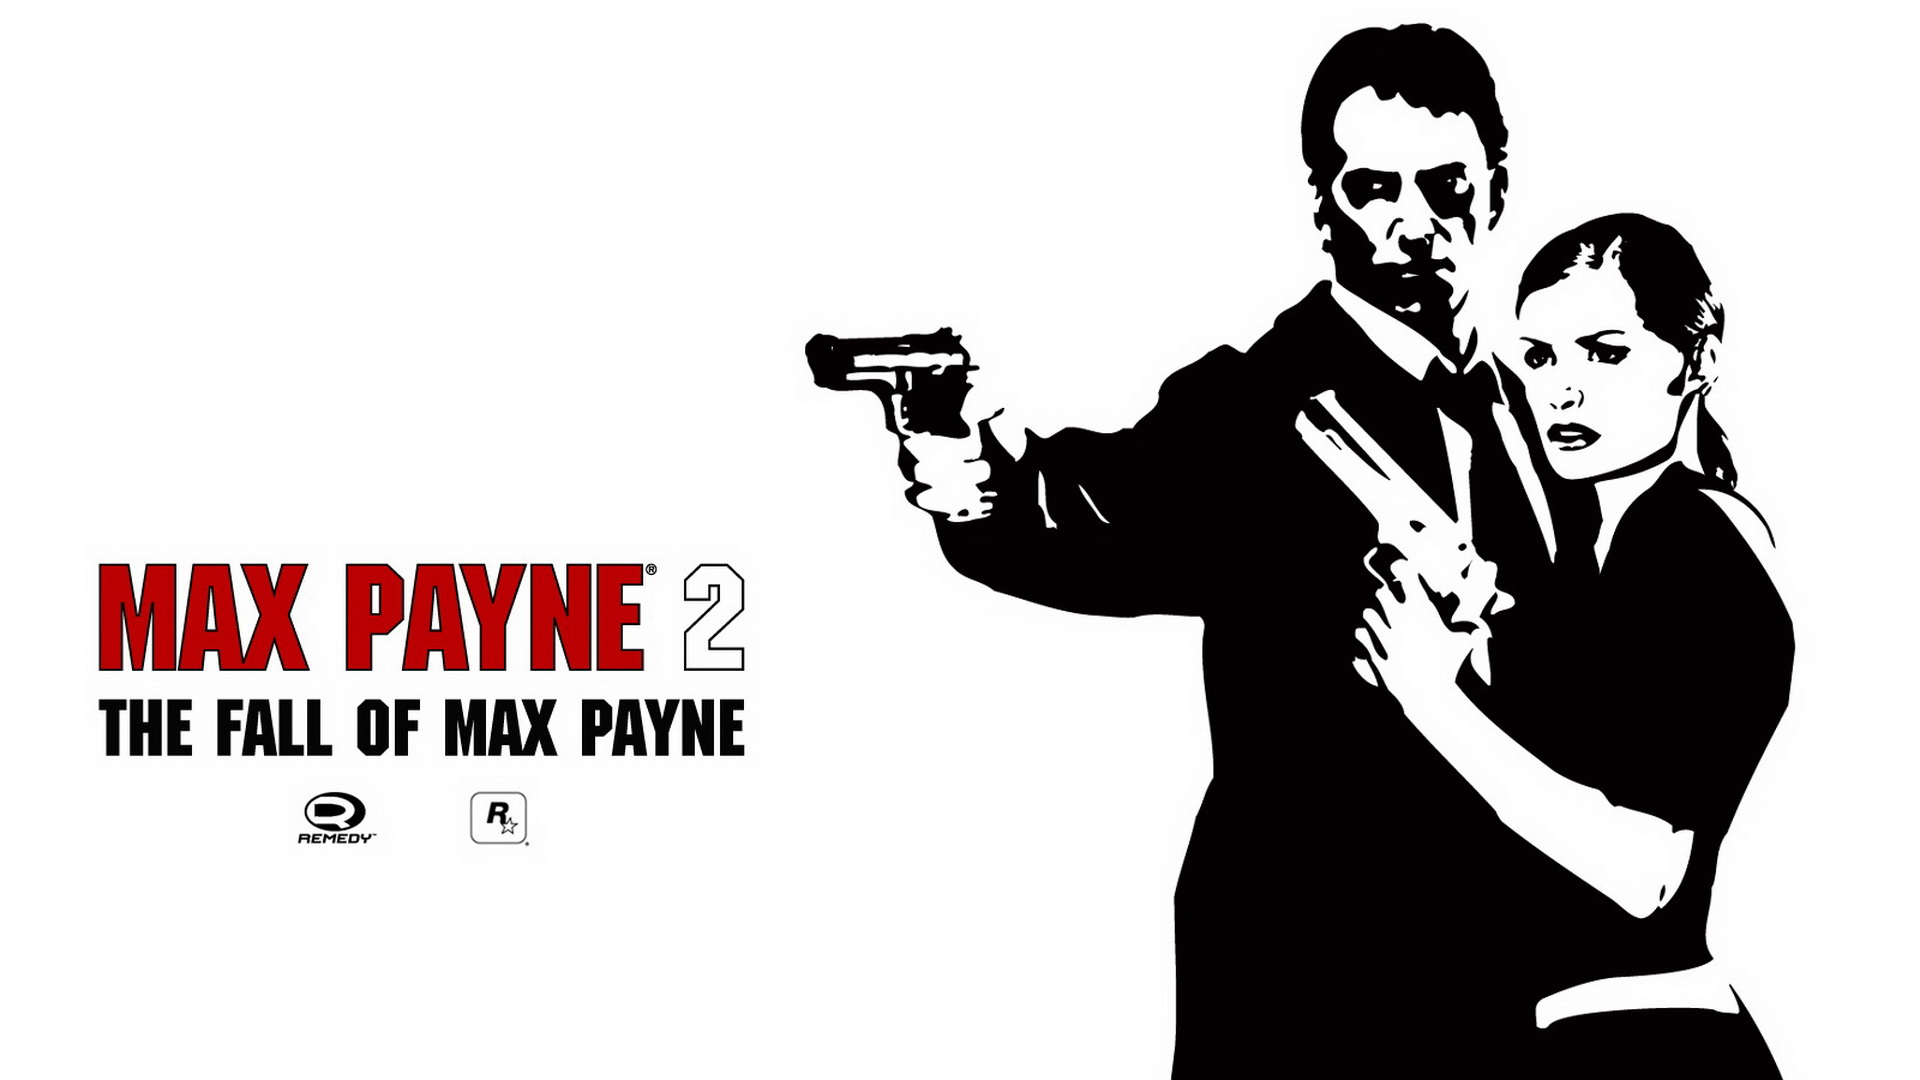 Max Payne 2 The Fall Of Max Payne Hd Wallpaper Background Image